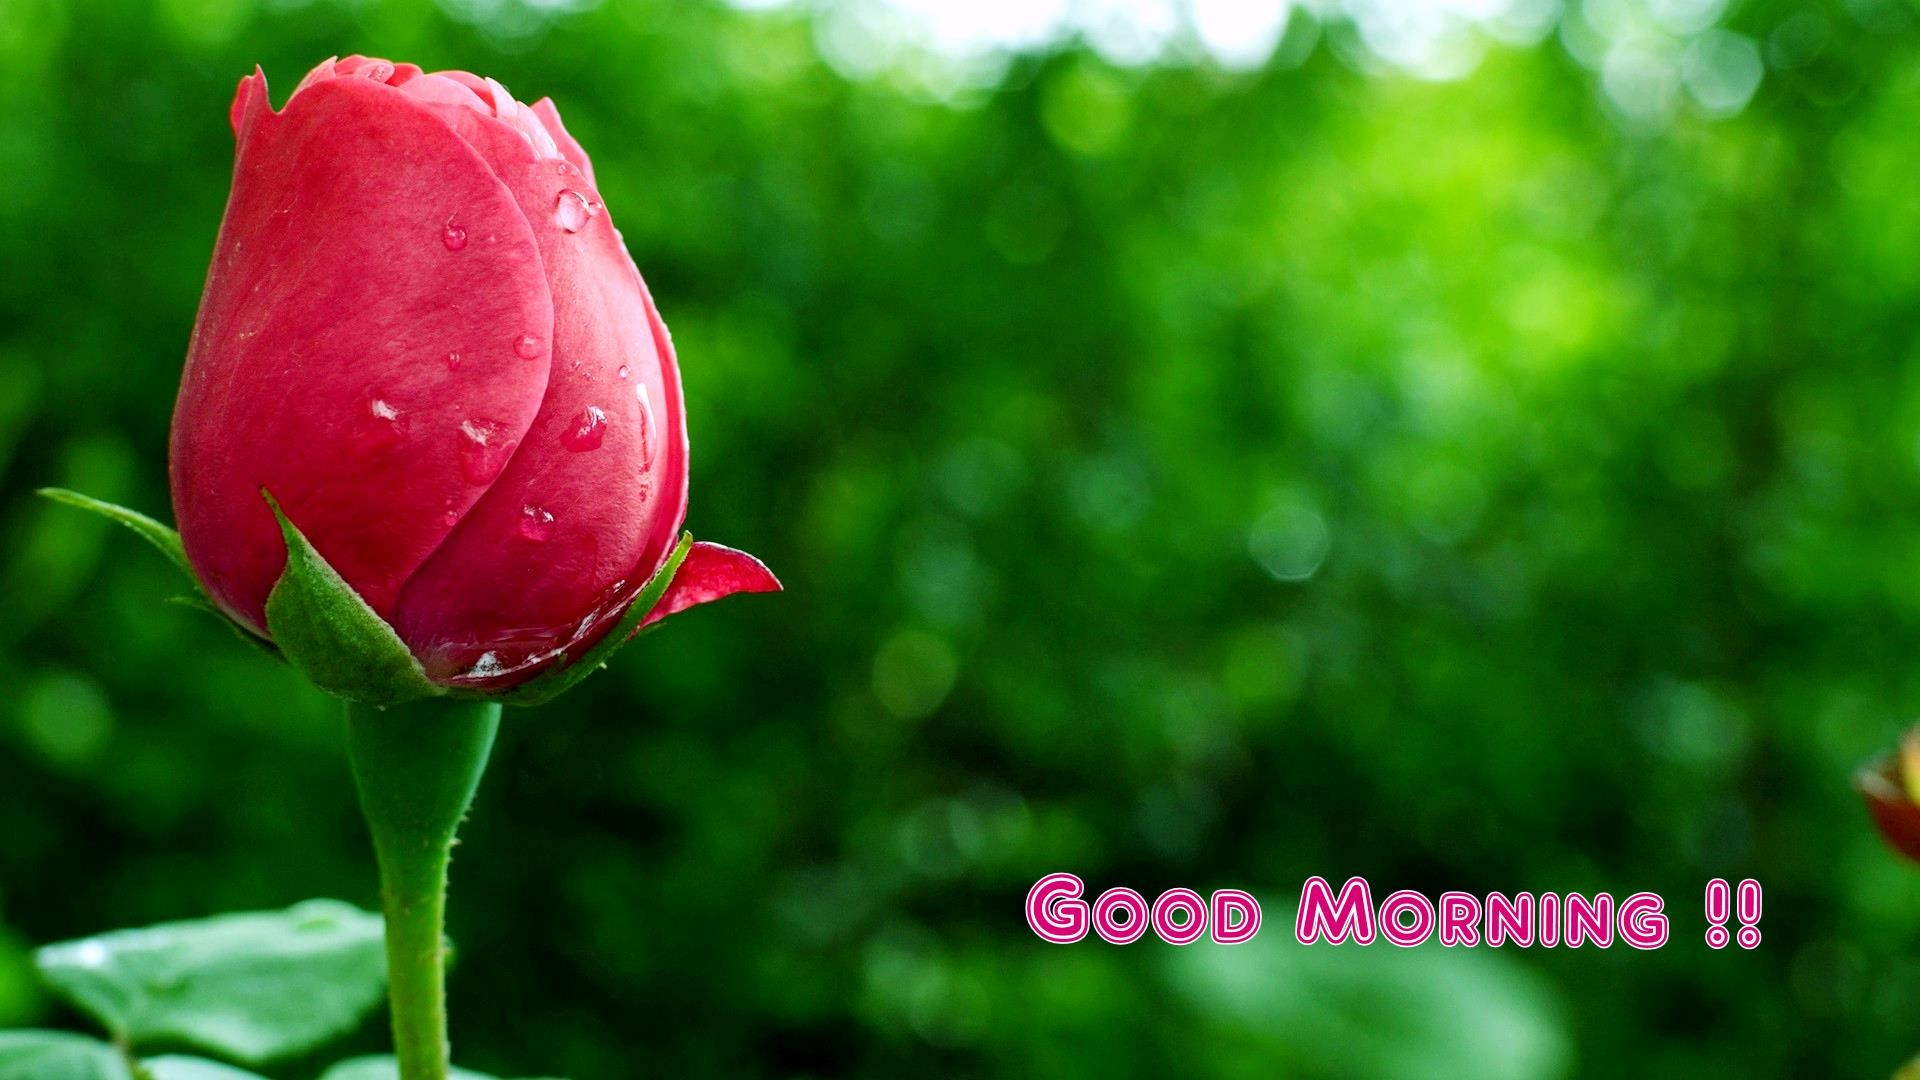 1920-x-1080-px-rose-pic-free-by-Sunday-Blare-wallpaper-wp360737